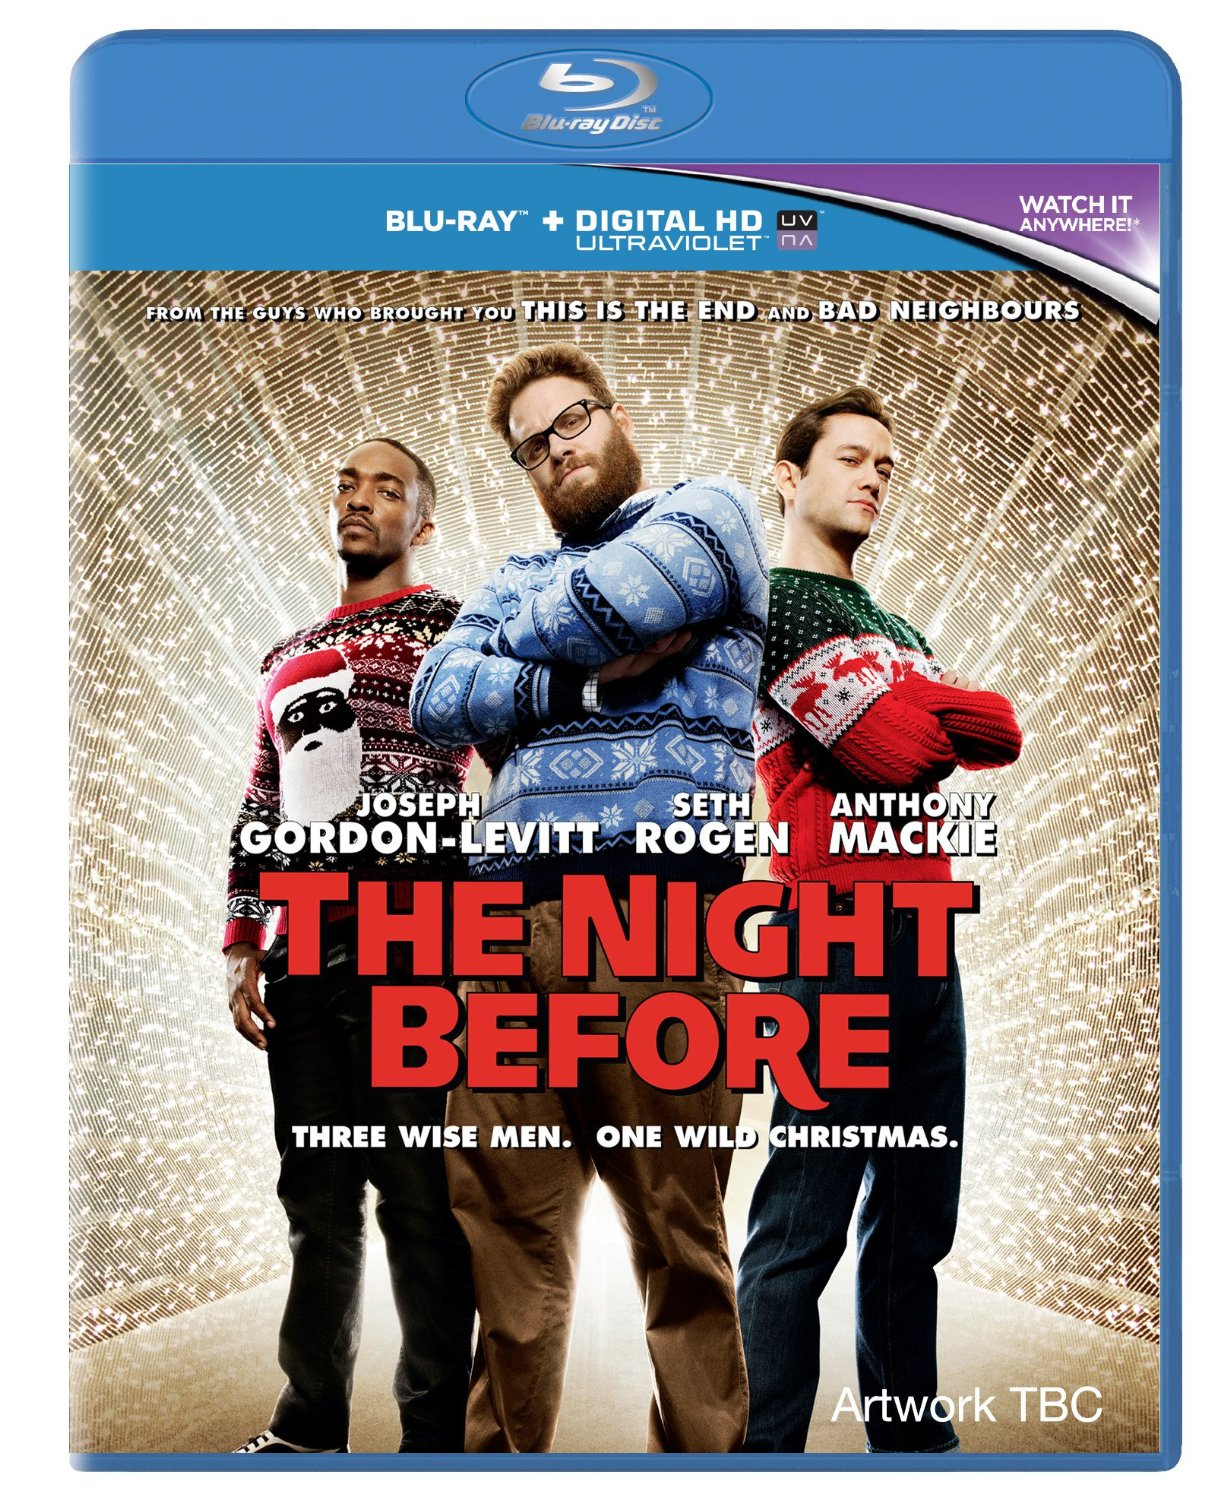 the-night-before-blu-ray.jpg